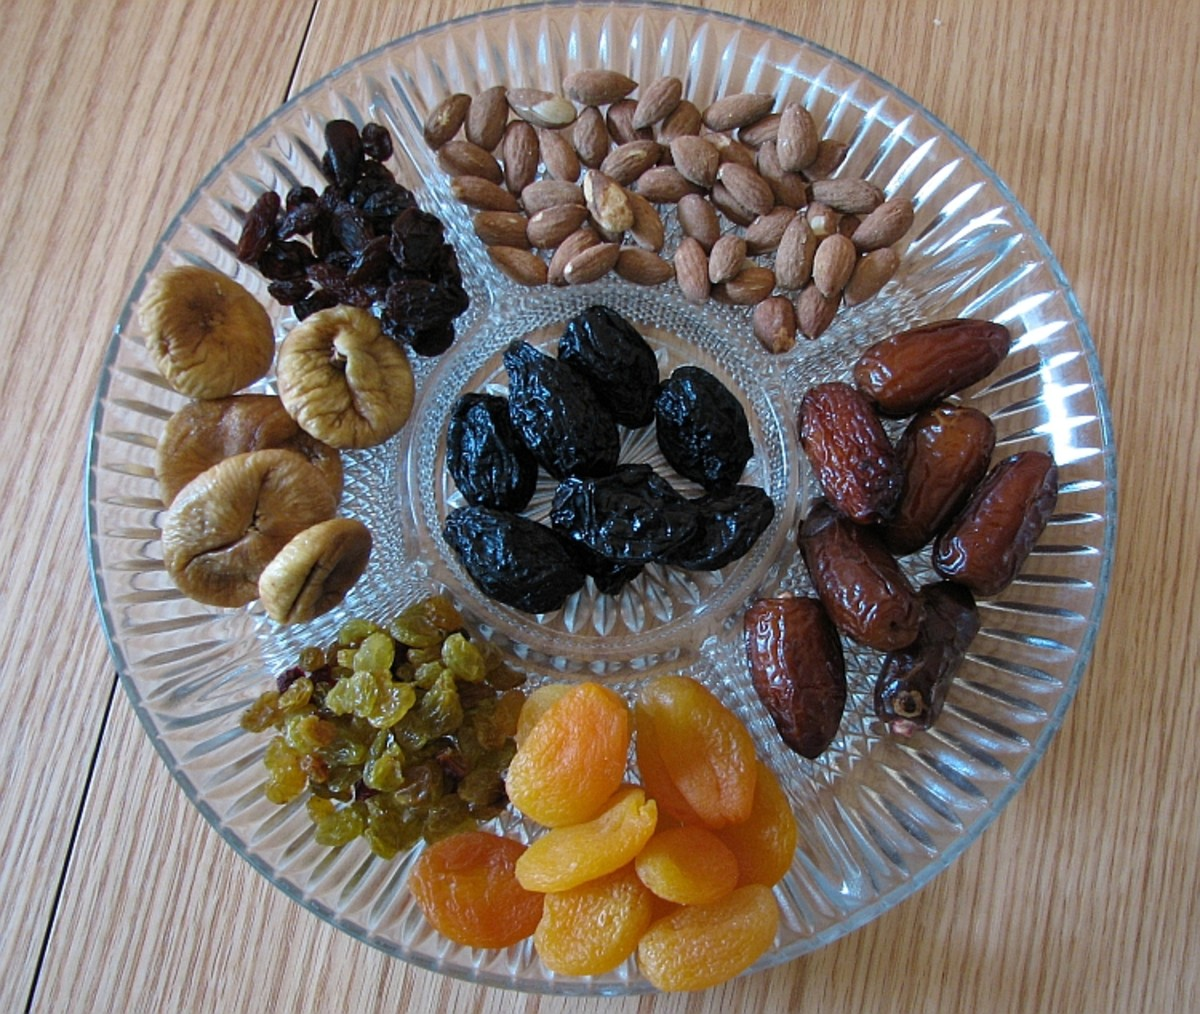 To Bishvat Is Celebrated By Eating Dried Fruits And Nuts